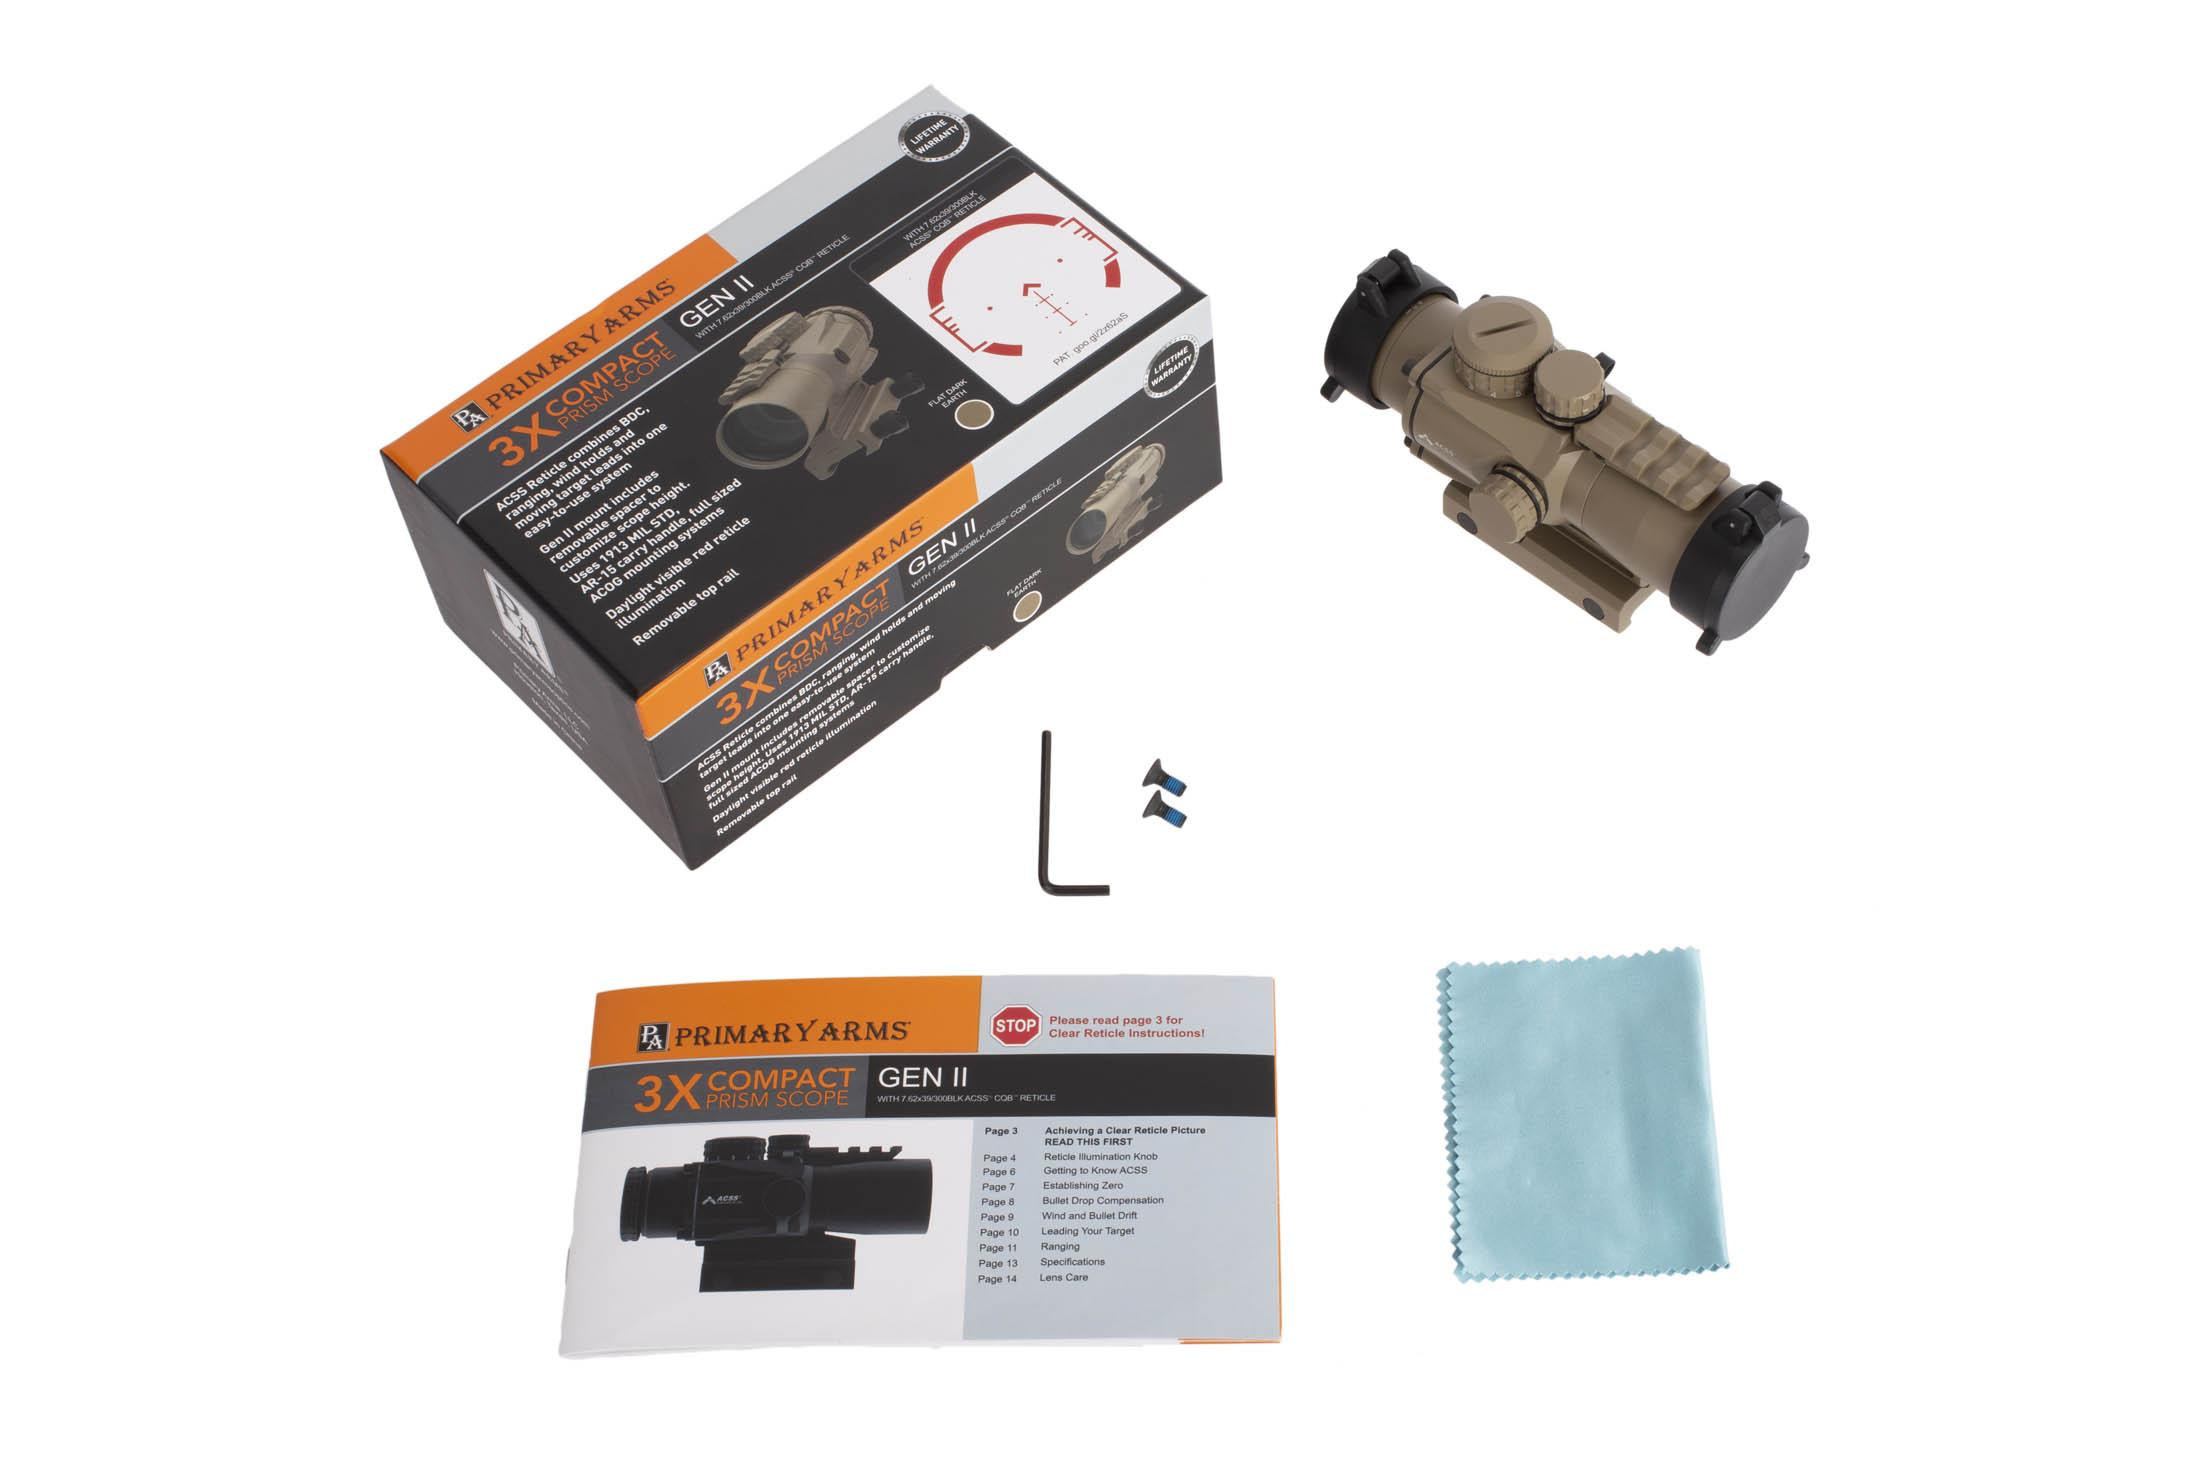 Primary Arms FDE 3x Compact Prism Scope includes manual, spare screws, mount, tool, flip caps, and lens cleaning cloth